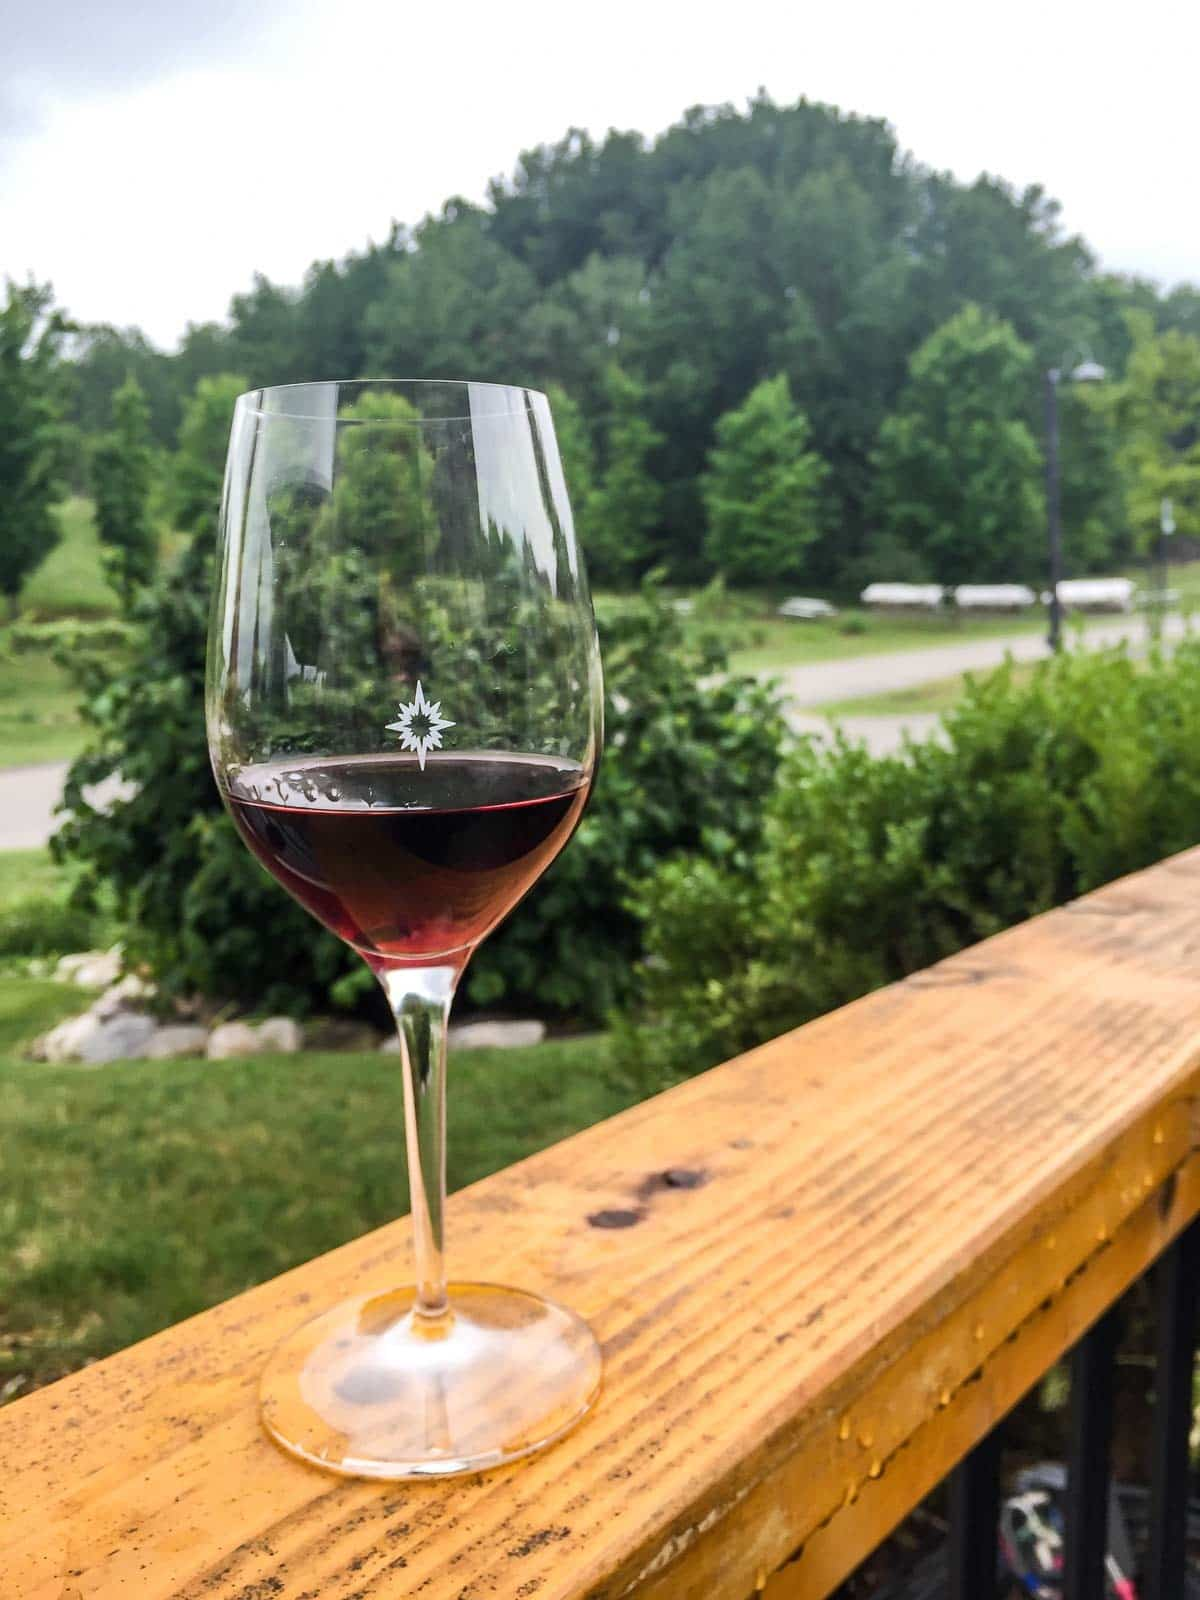 Black Star Farms winery in Suttons Bay, Michigan